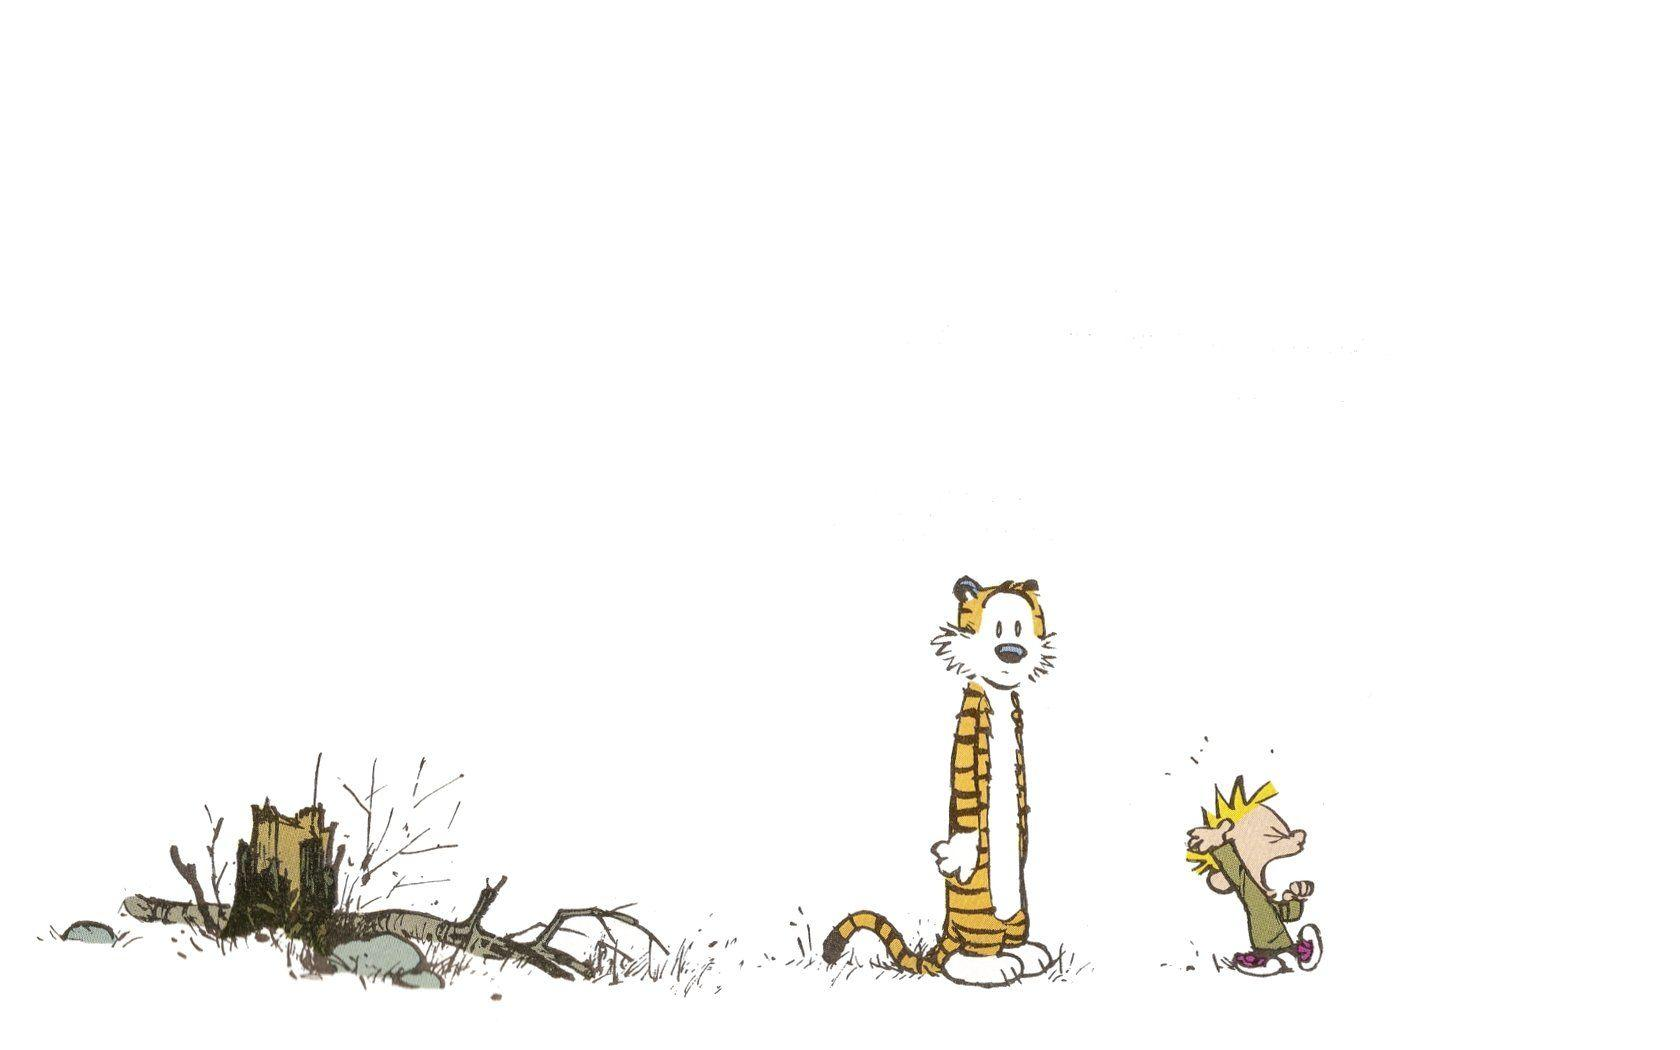 Calvin And Hobbes Wallpapers 1440x900 px Free Download